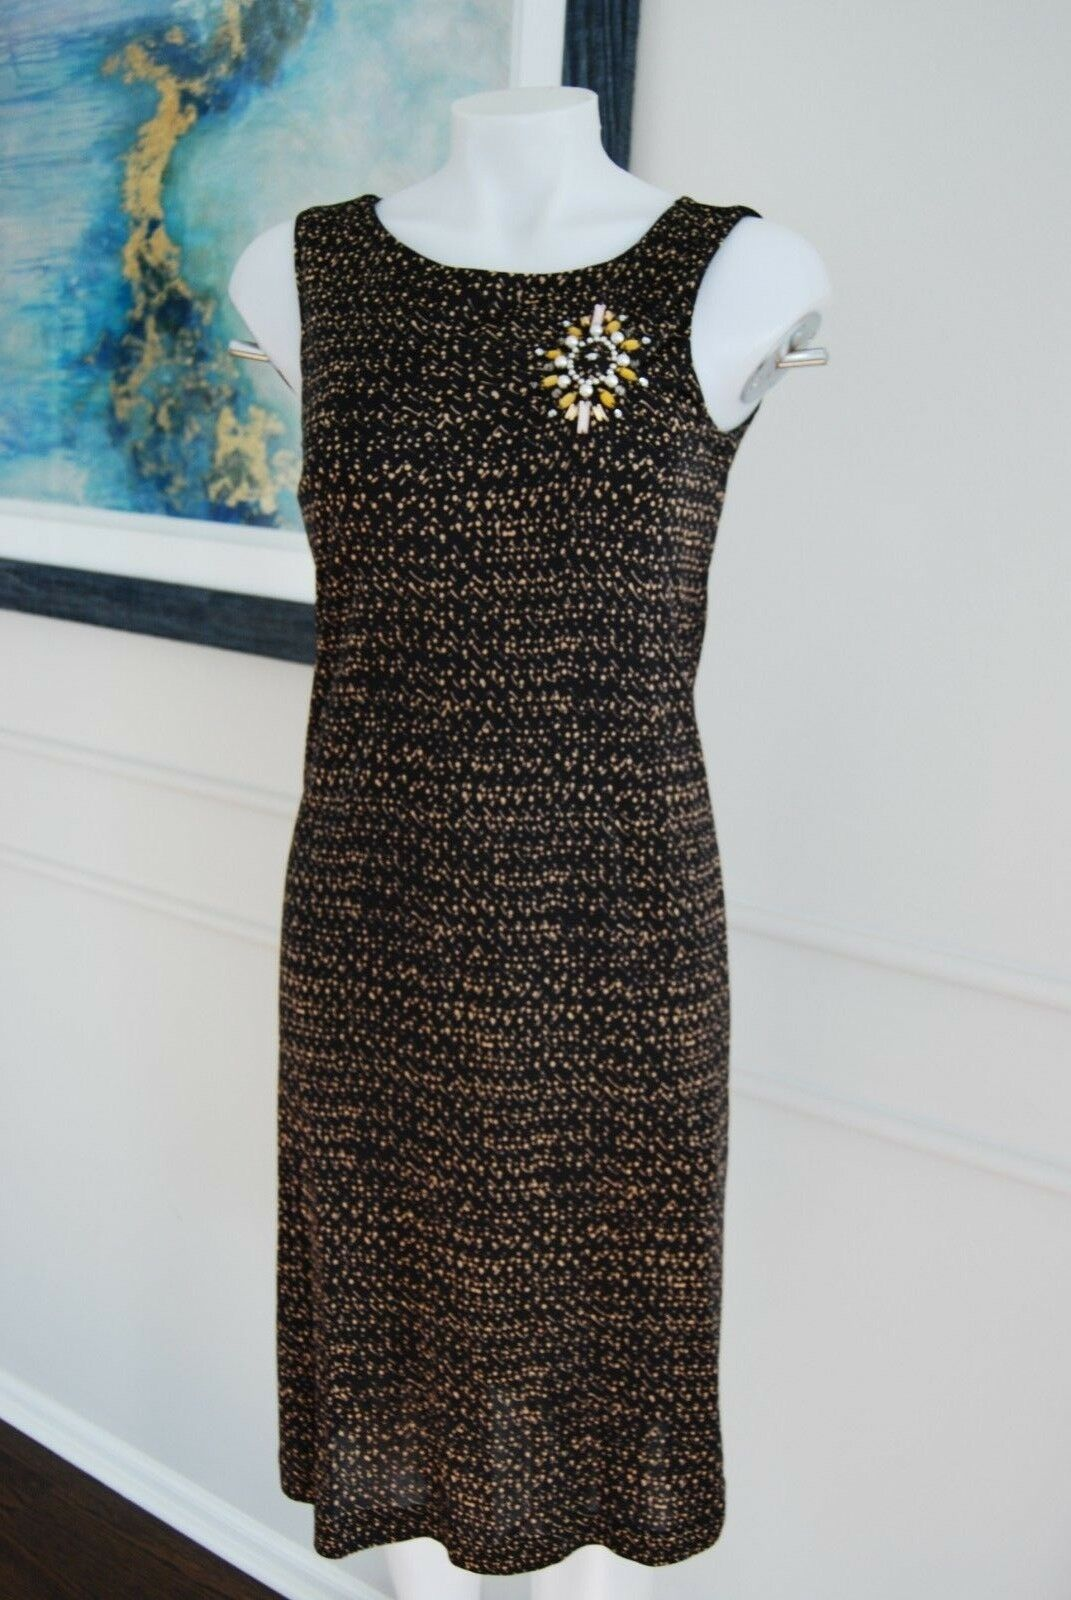 Maliparmi  Woman's Dress Sequins Fit ITALY  Size 42 8   Cute & Stylish